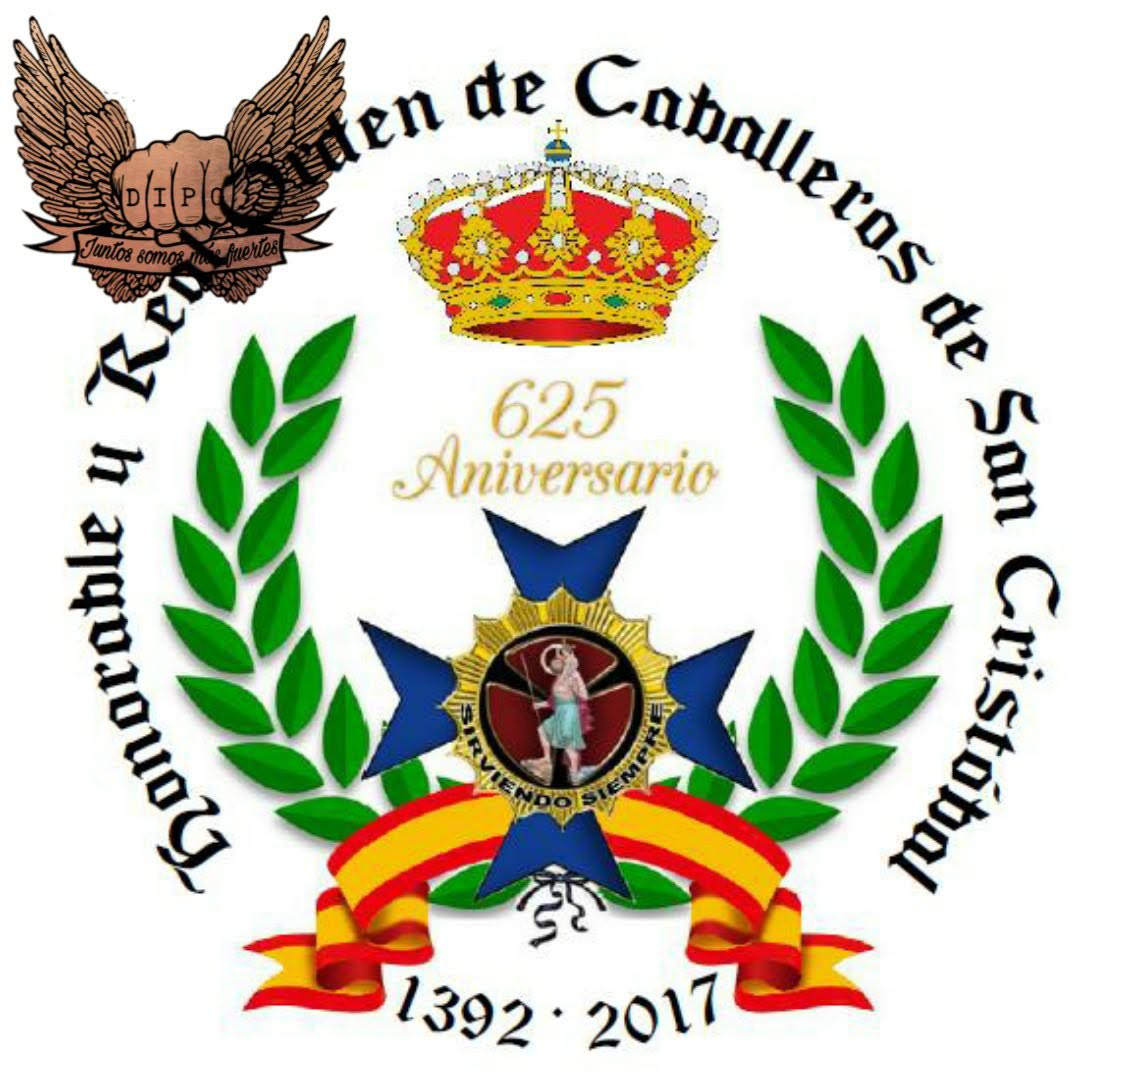 Honorable Real Orden de Caballeros de San Cristobal